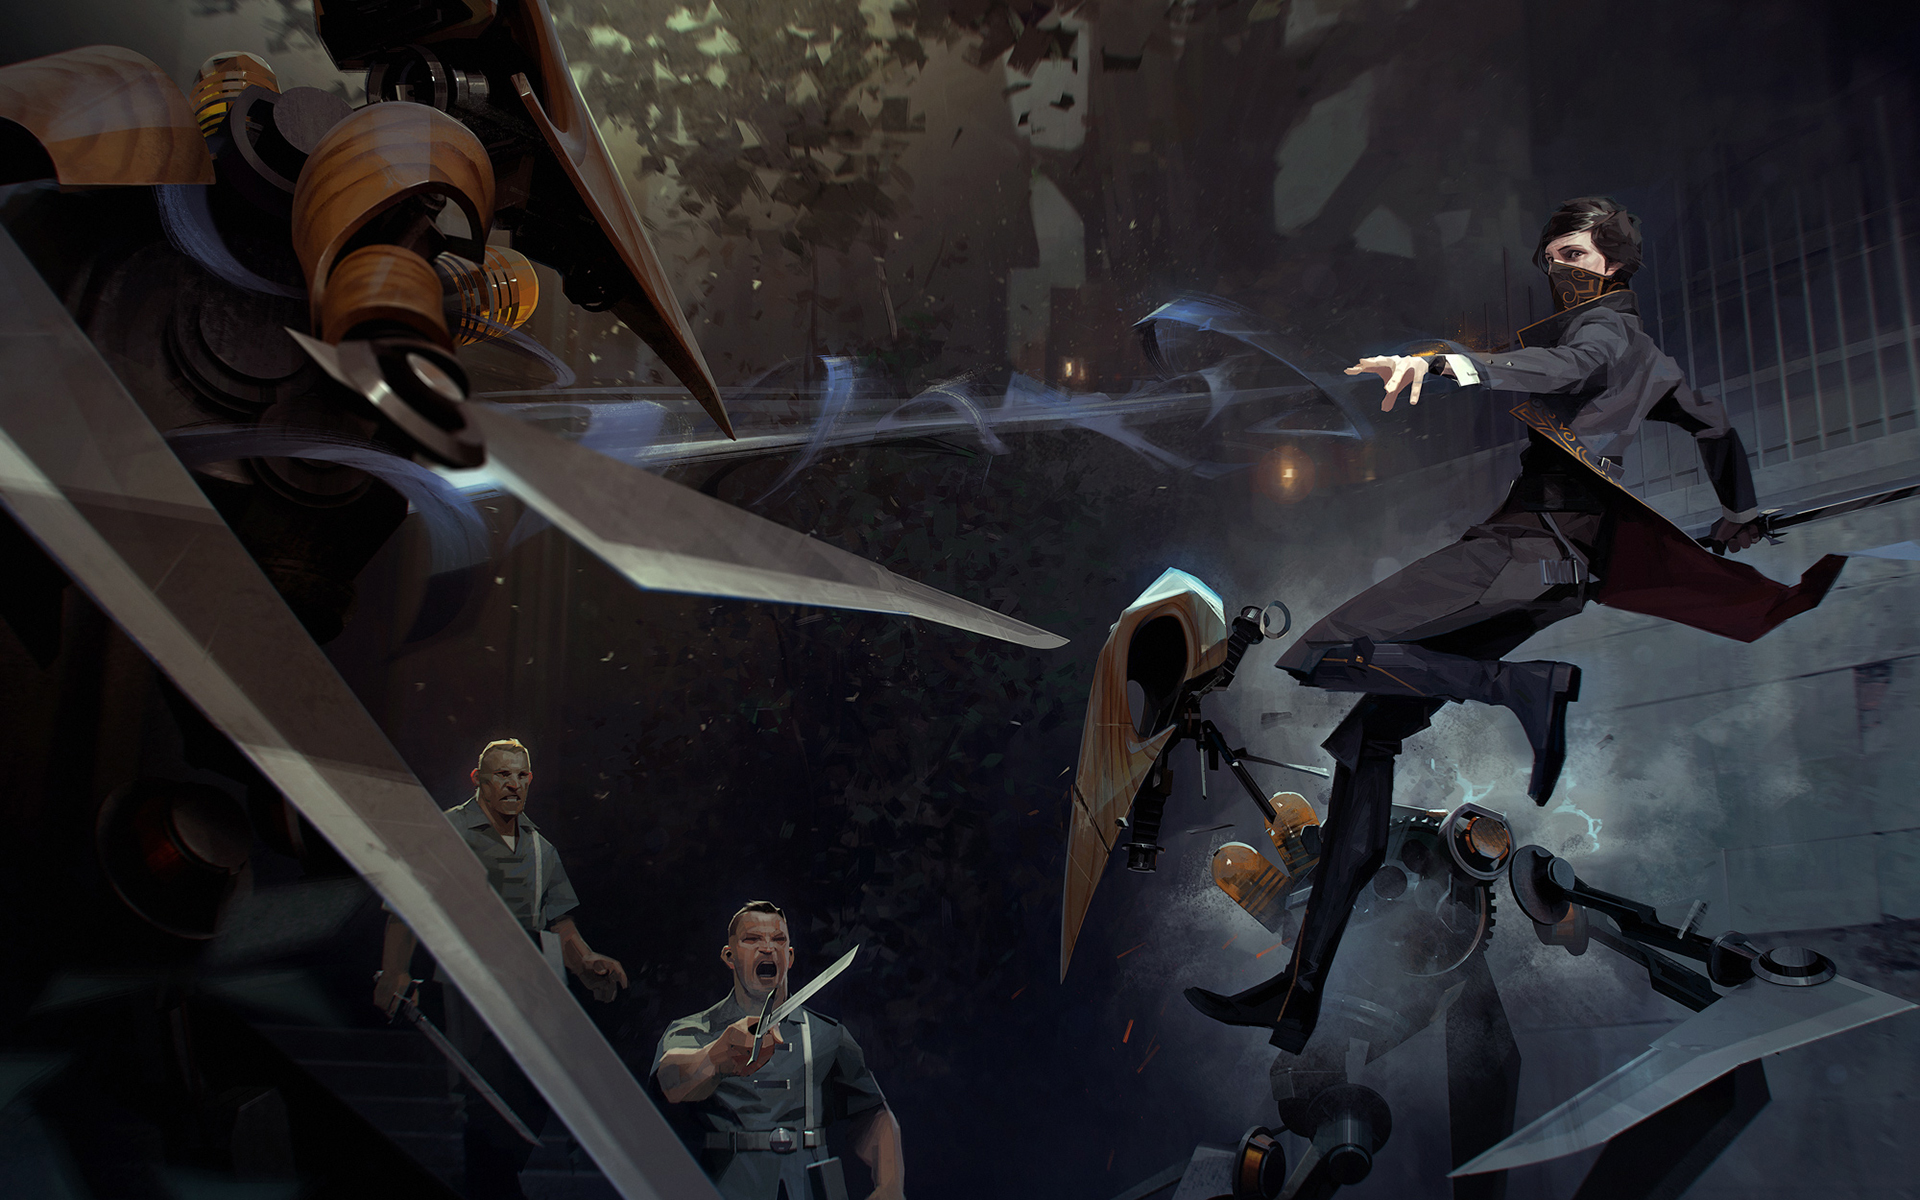 dishonored 2 wallpaper  Emily Dishonored 2, HD Games, 4k Wallpapers, Images, Backgrounds ...